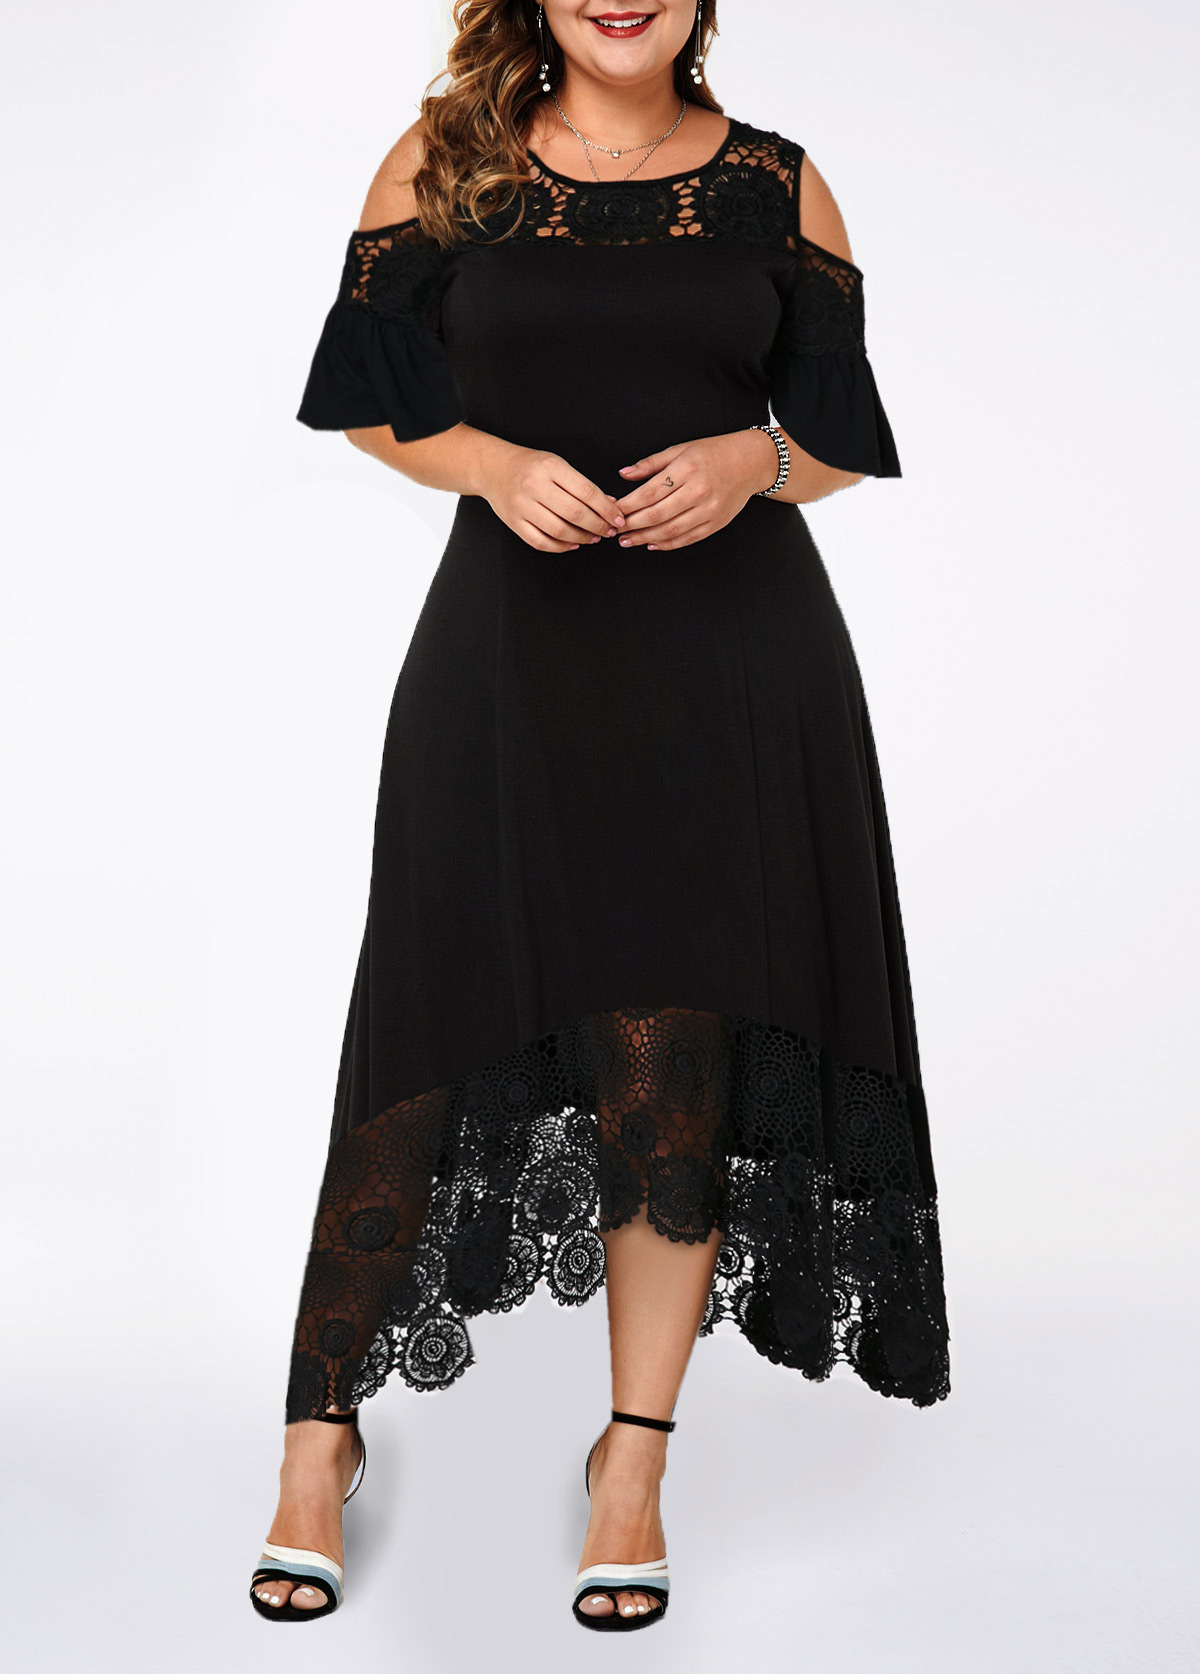 Plus Size Cold Shoulder Lace Patchwork Dress | modlily.com - USD $35.08